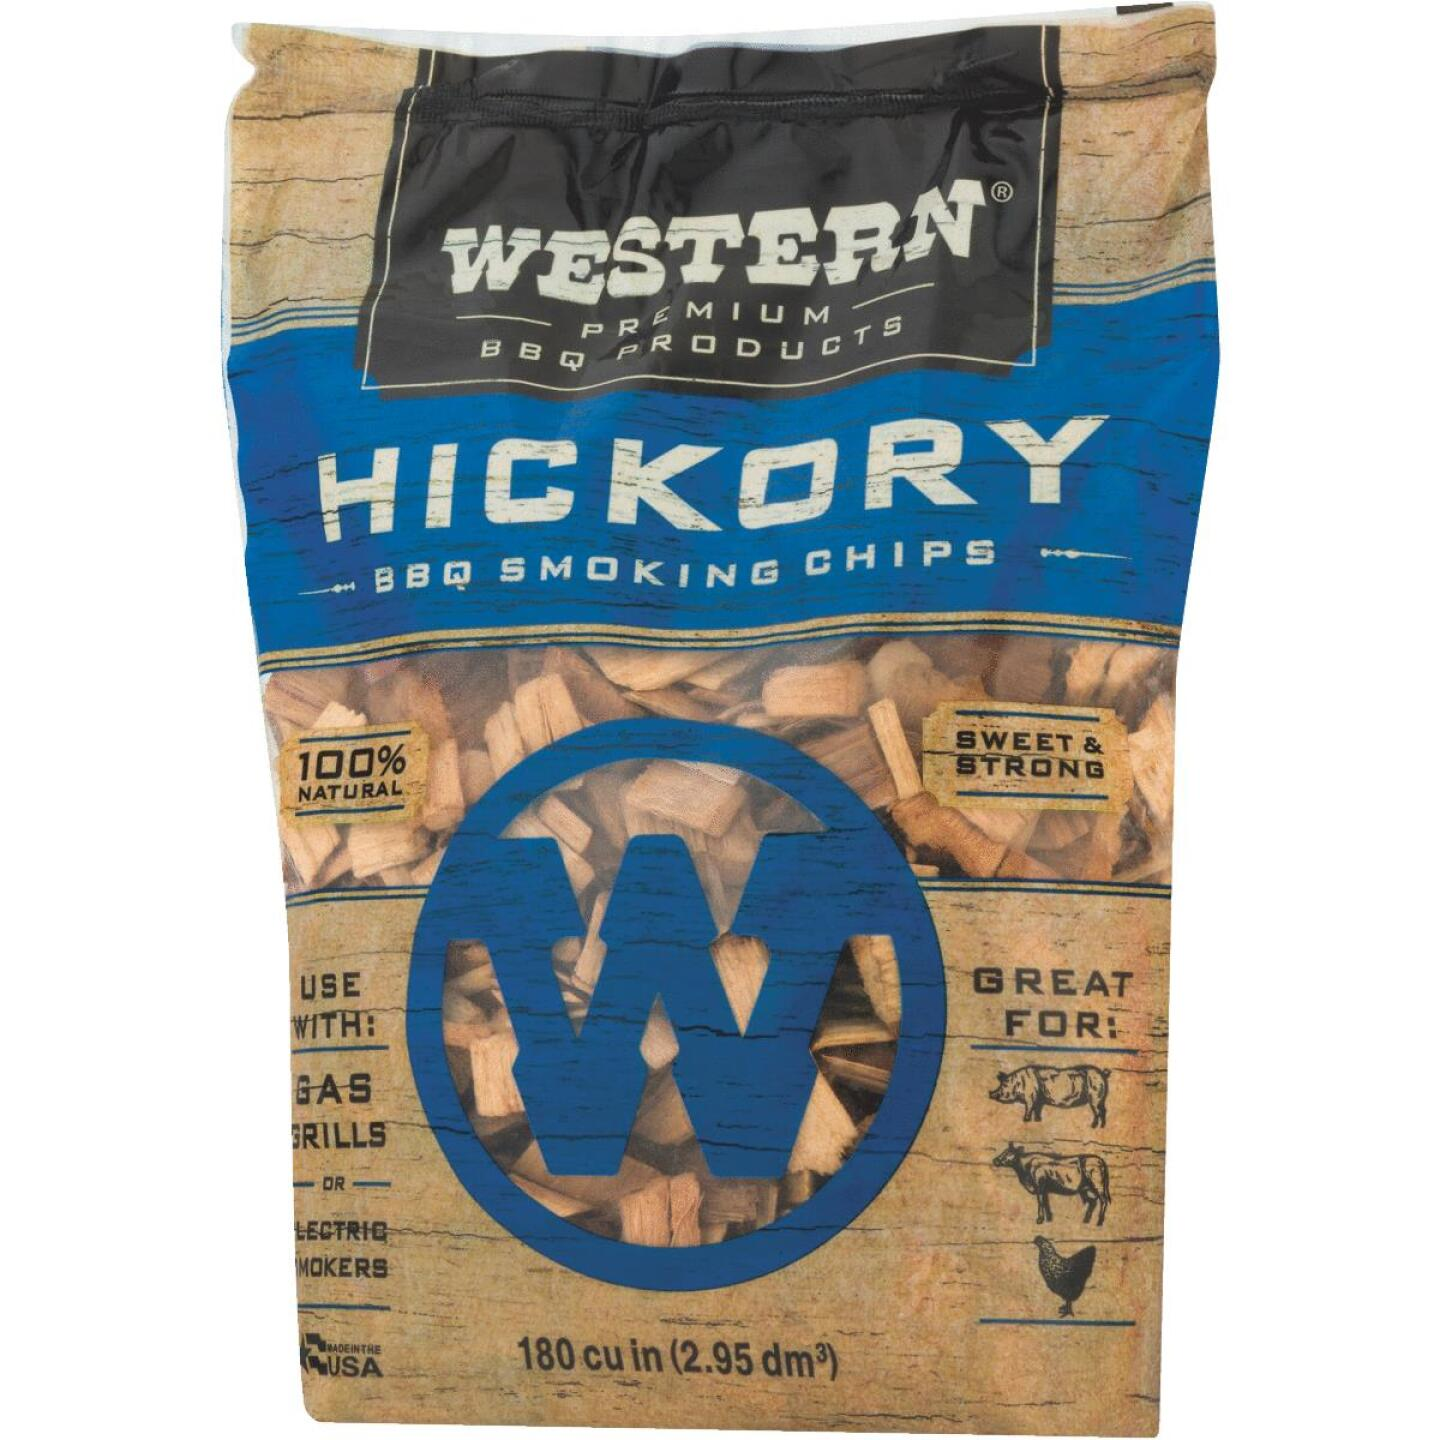 Western 180 Cu. In. Hickory Wood Smoking Chips Image 2